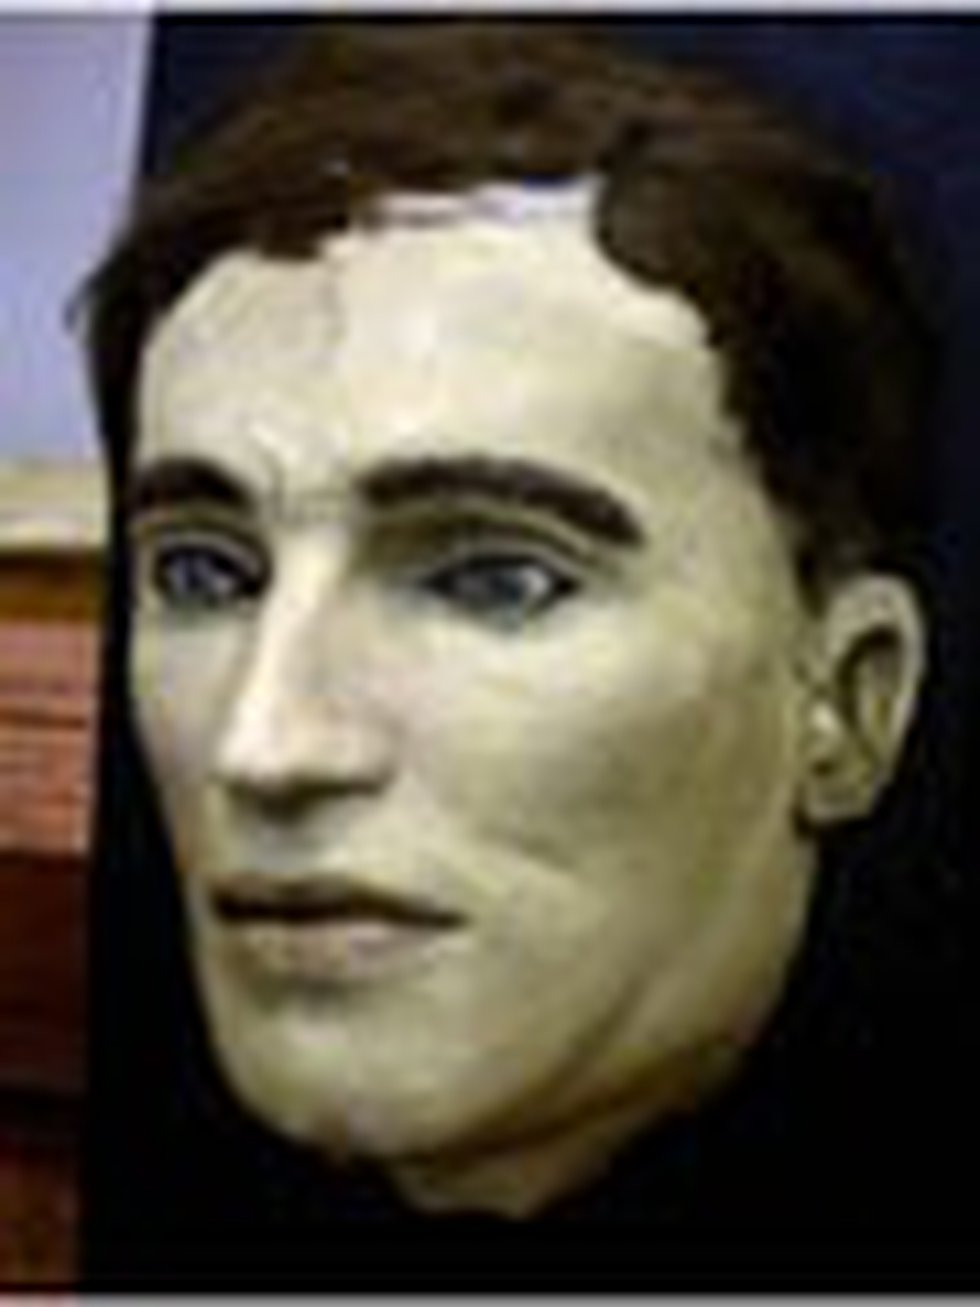 This is a death mask of the second victim in the Cleveland Torso Murders. The mask was shown to...